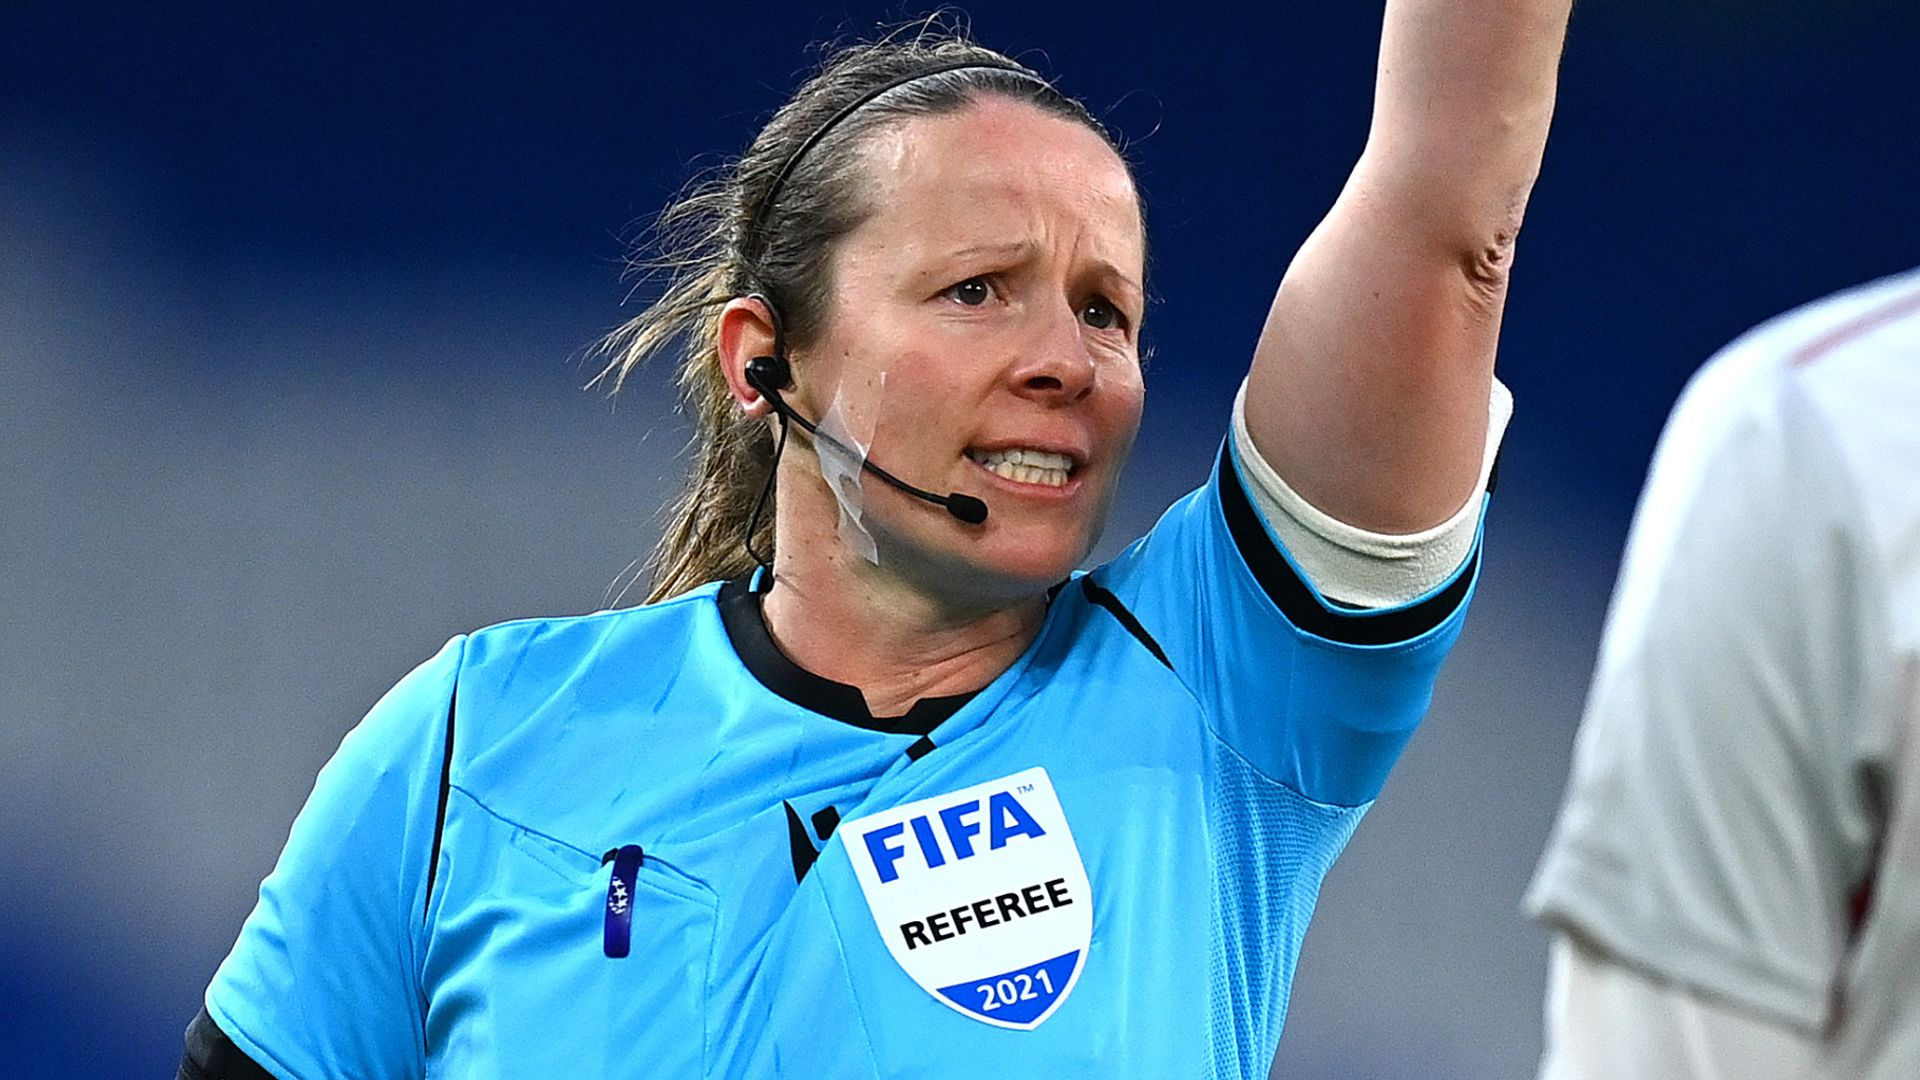 Petition support from football family boosts ref Pearson